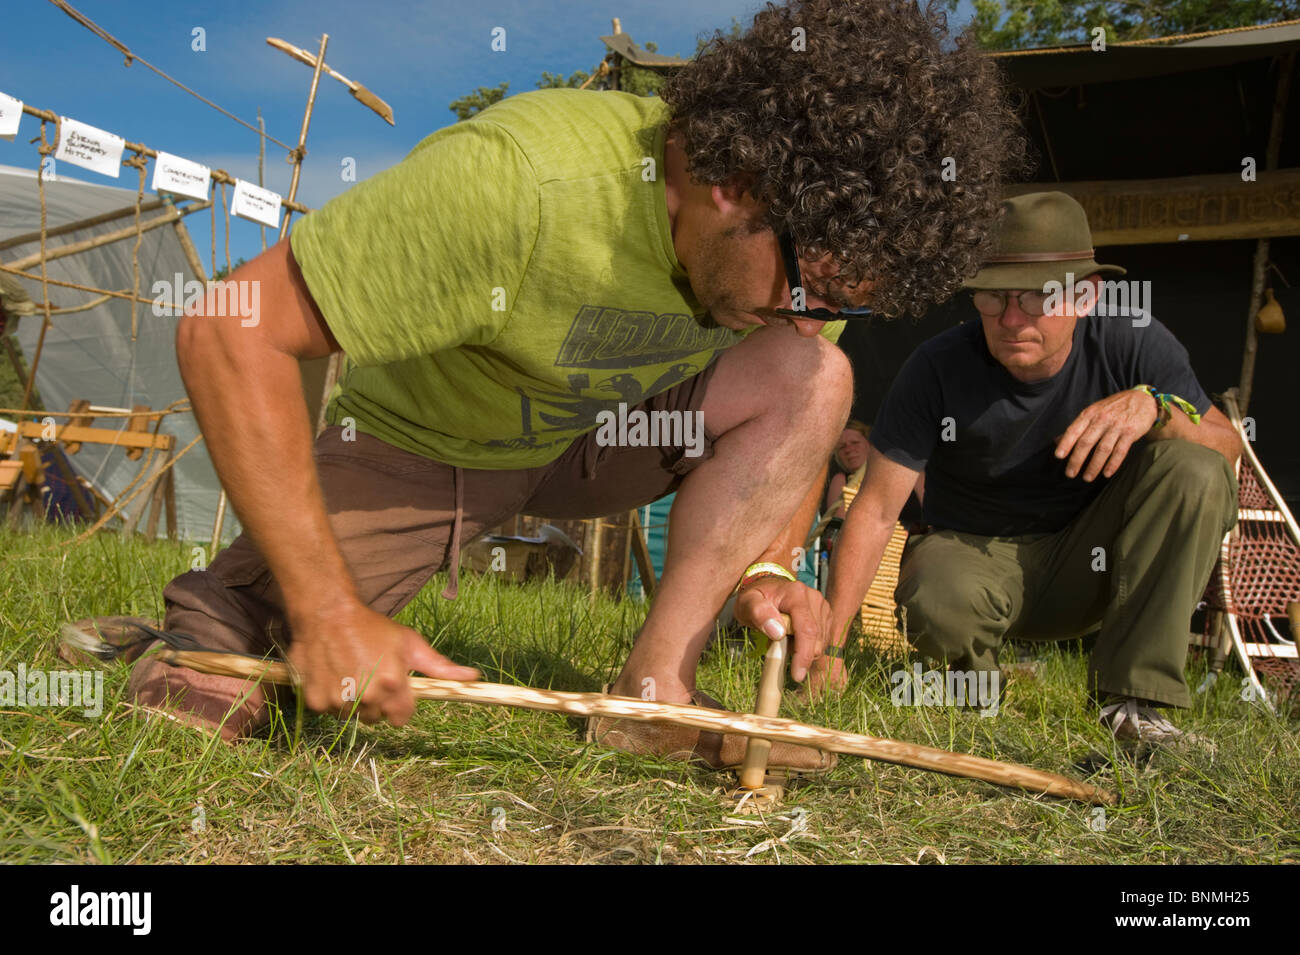 Wilderness survival expert teaches how to start a fire using a bow and friction to create heat at the Glastonbury - Stock Image